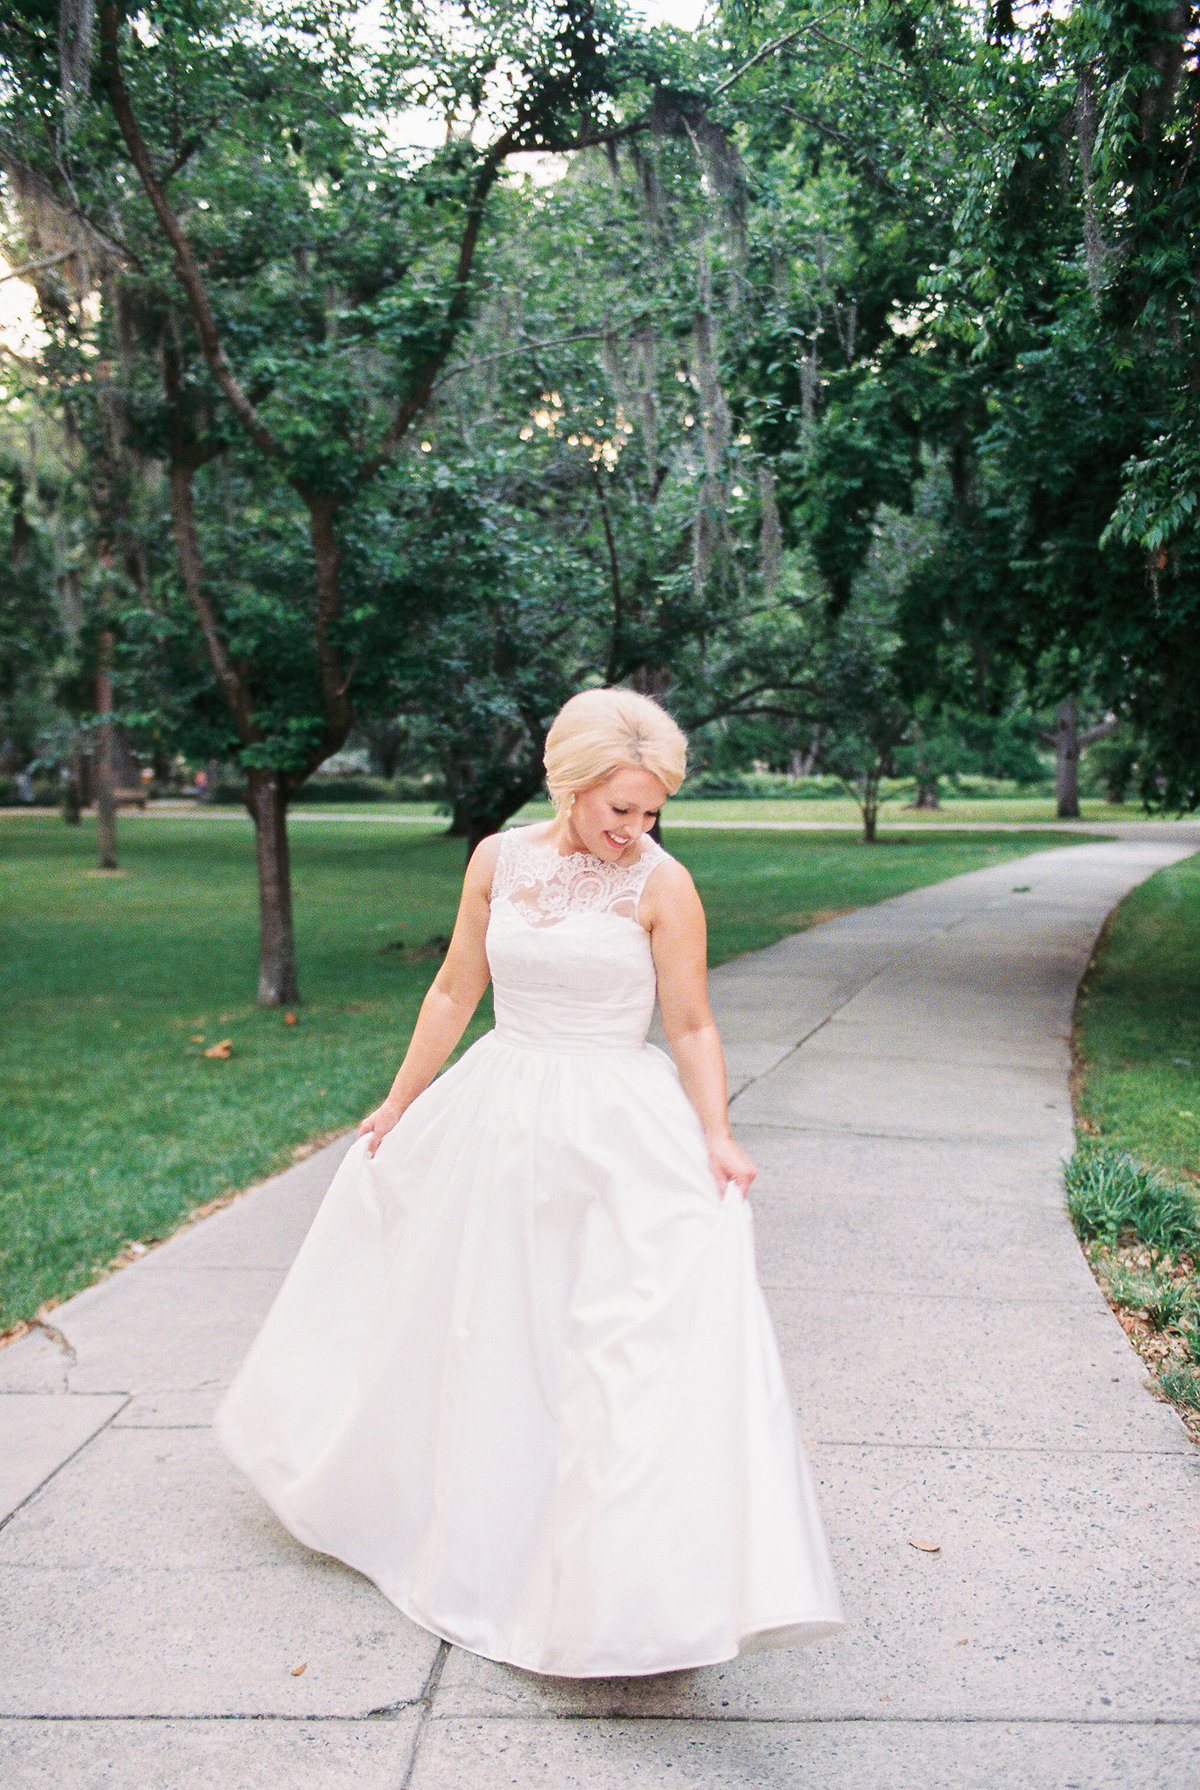 Savannah-Georgia-Wedding-Photographer-Holly-Felts-Photography-Wilmon-Wedding-469